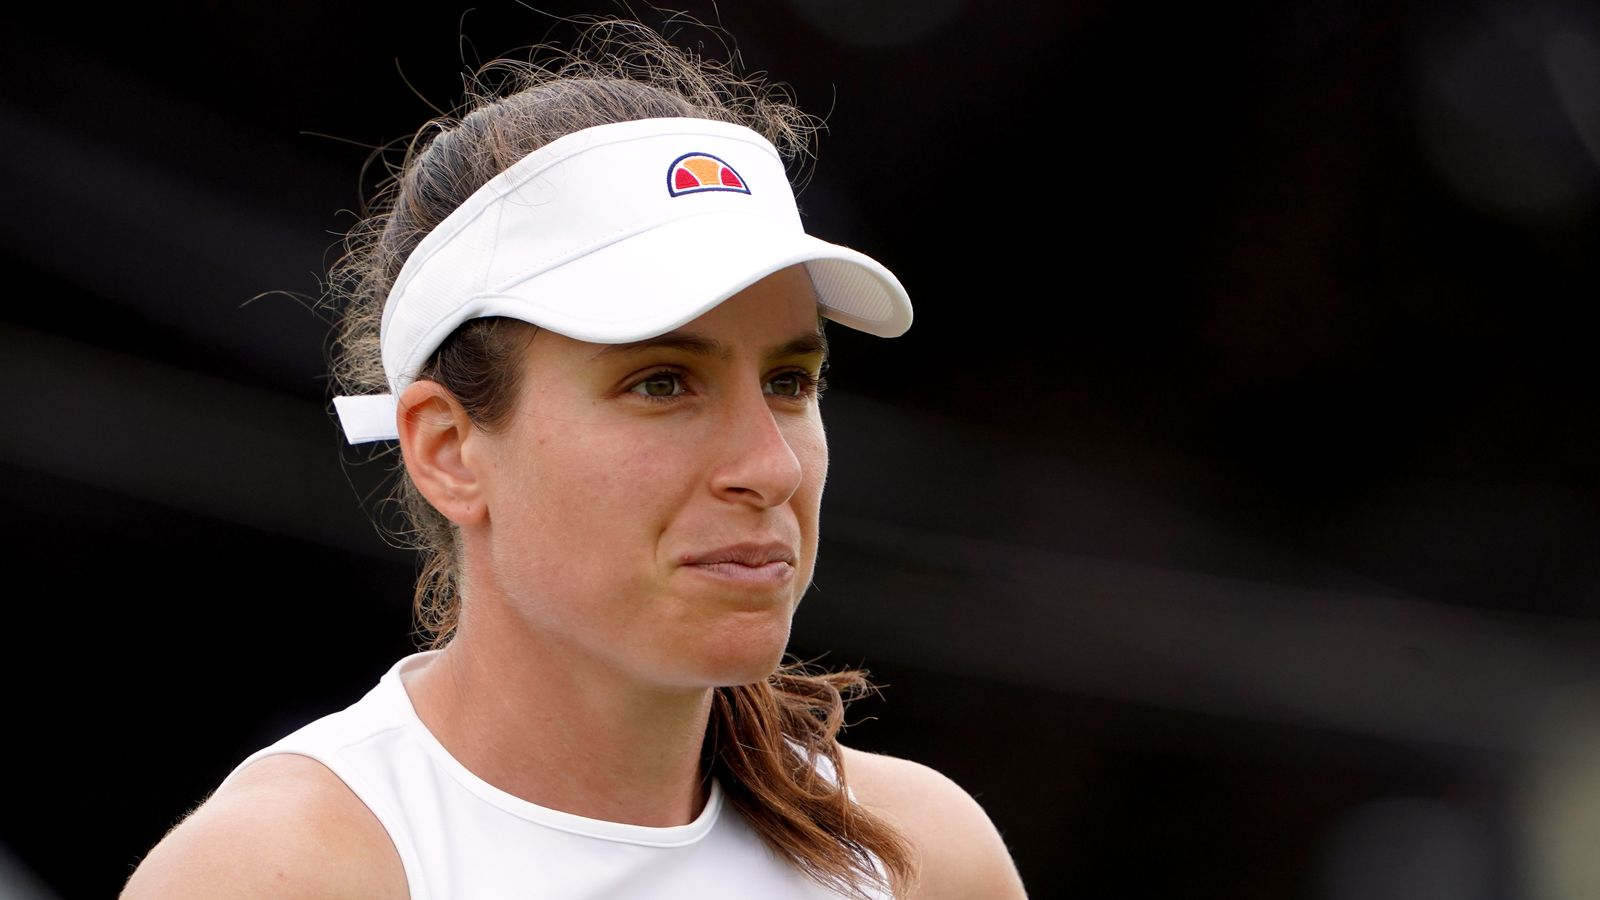 Johanna Konta withdraws from Tokyo Olympics after positive Covid-19 test leaves her unable to train